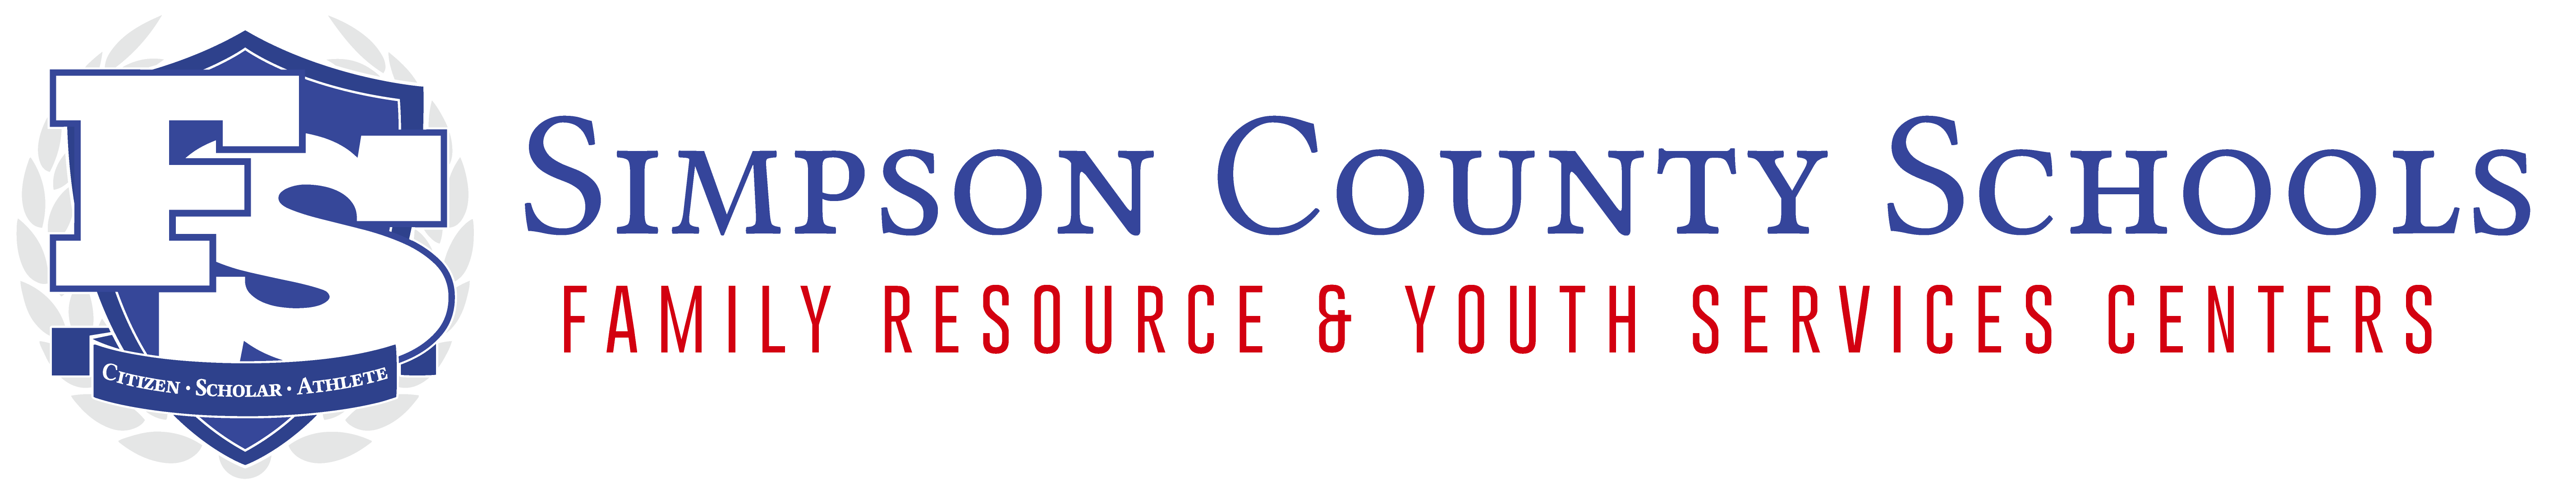 Family Resource & Youth Services Centers